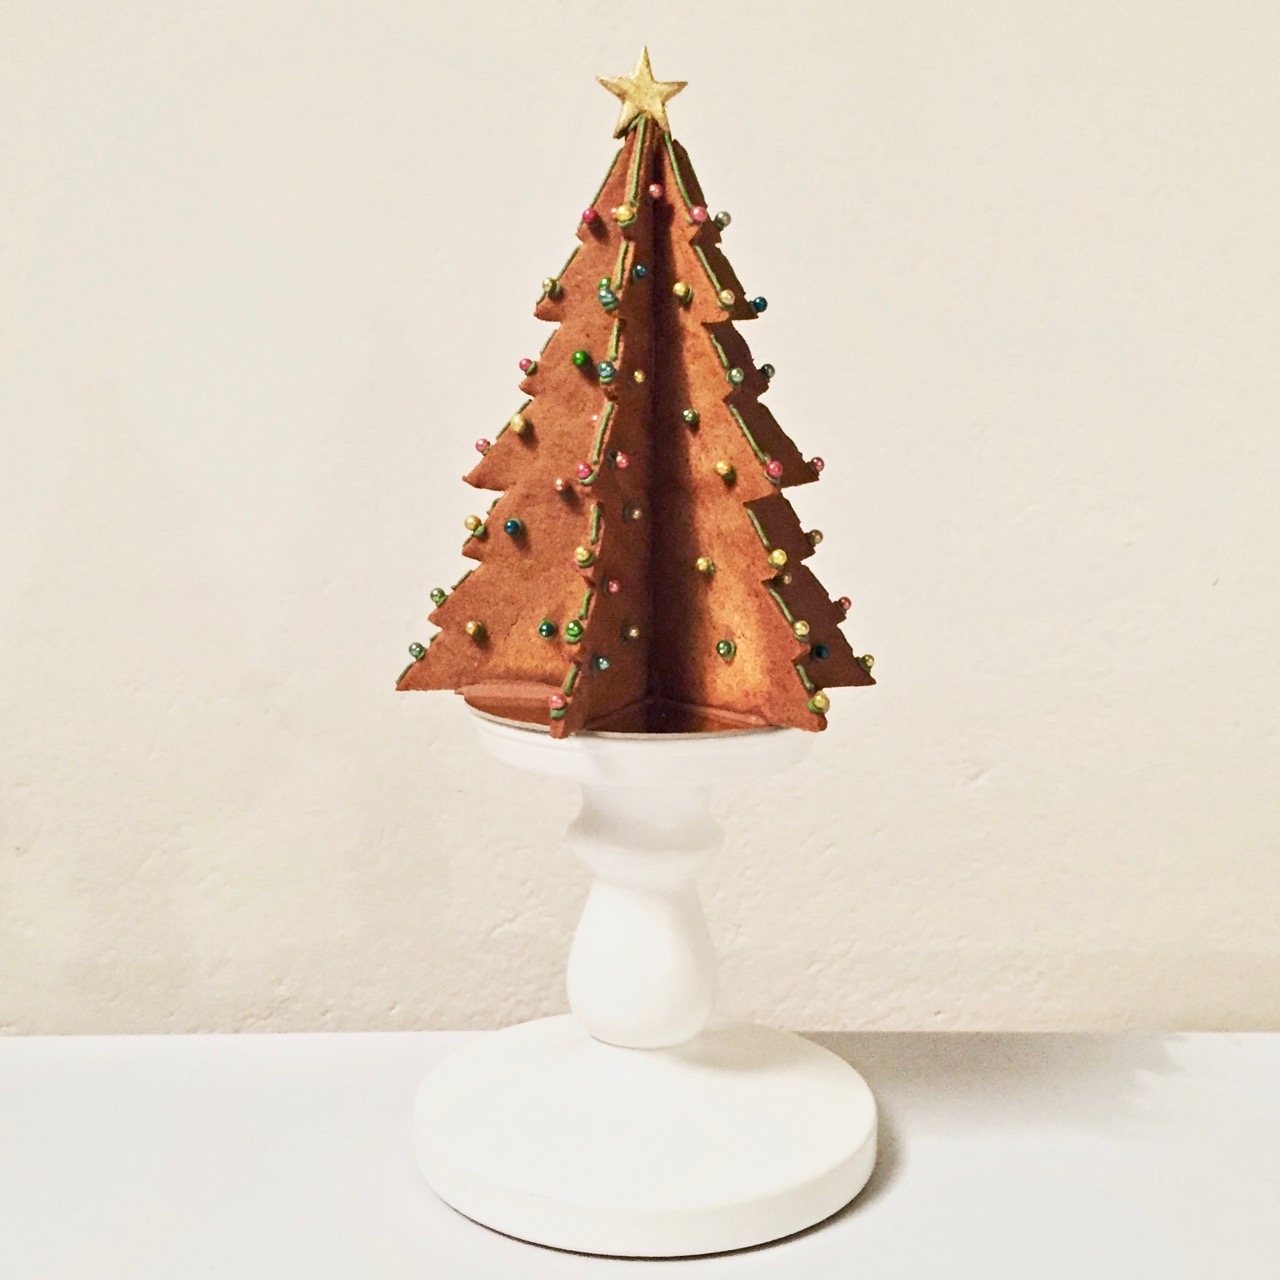 3D GINGERBREAD CHRISTMAS TREES